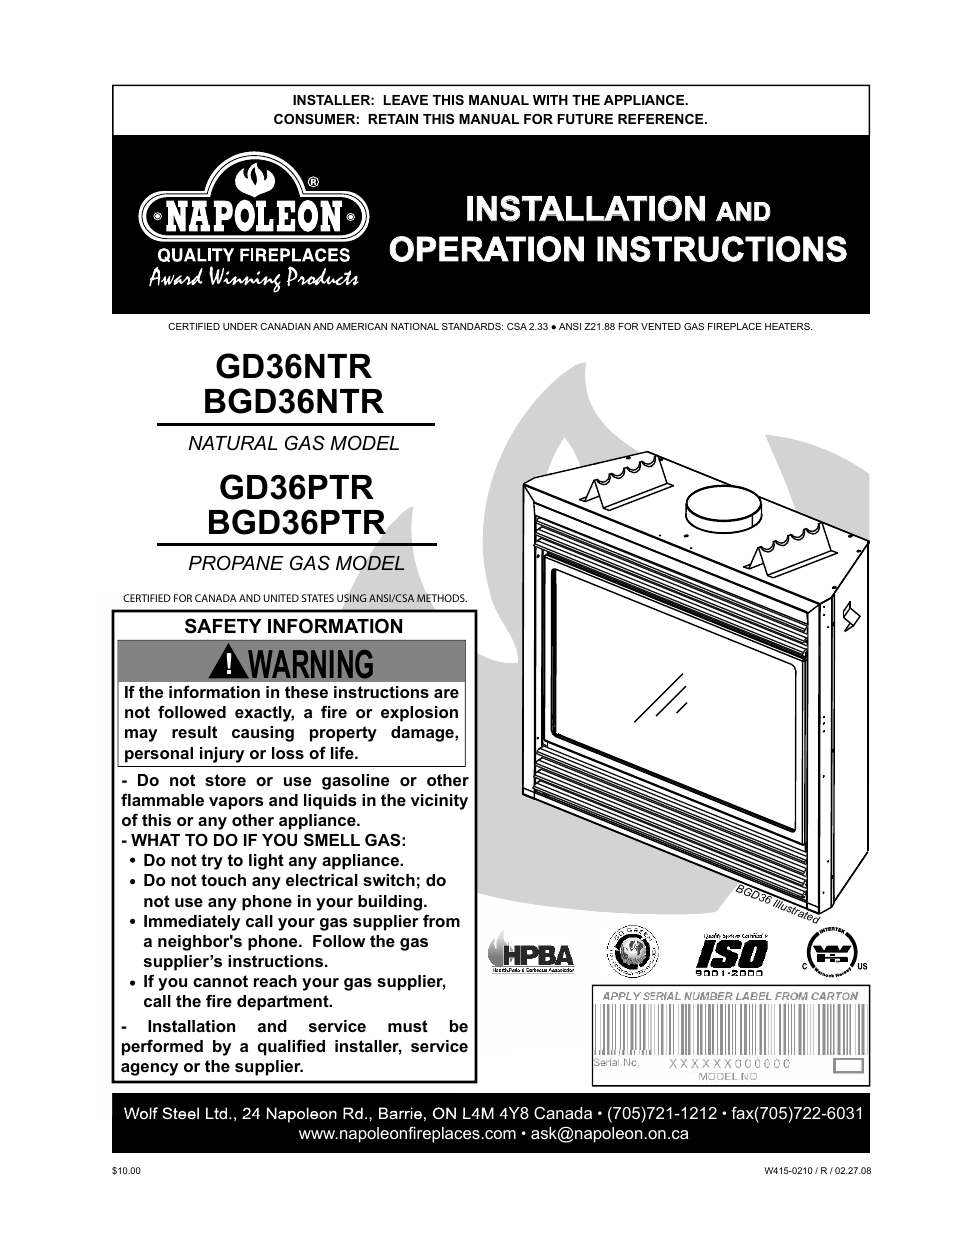 Napoleon fireplaces gd36ptr user manual 36 pages also for napoleon fireplaces gd36ptr user manual 36 pages also for bgd36ptr bgd36ntr gd36ntr asfbconference2016 Image collections